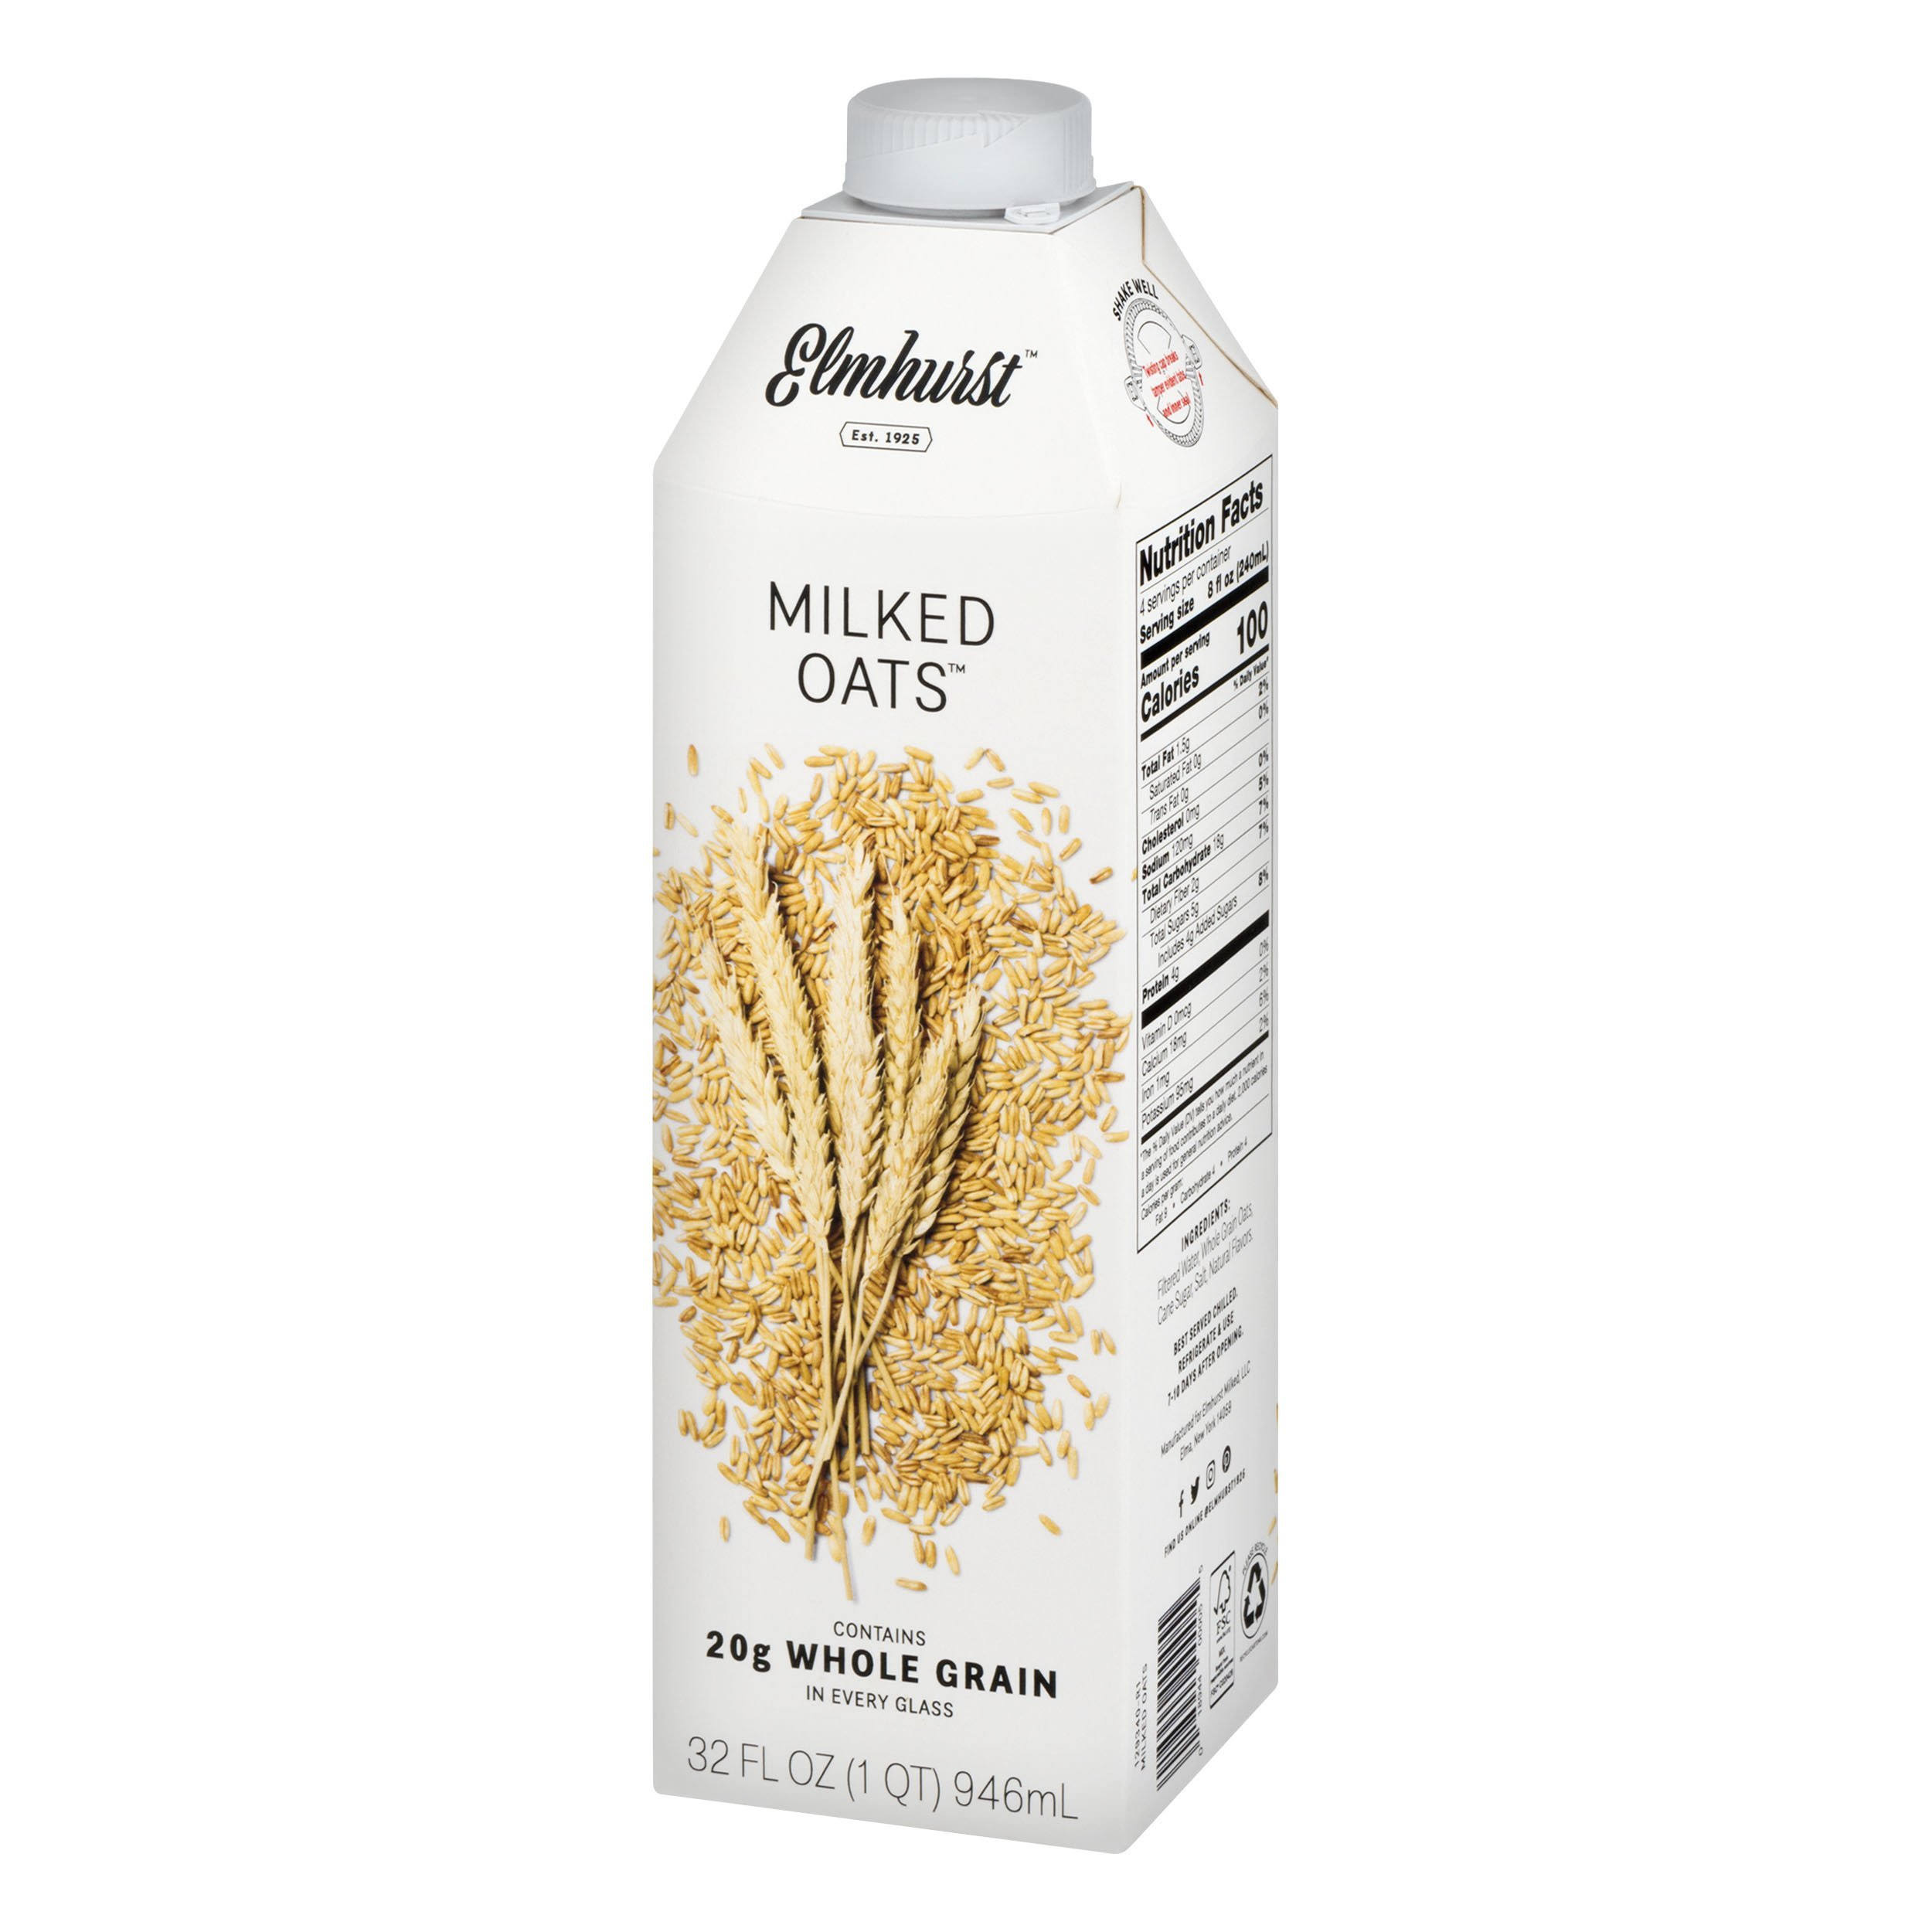 Elmhurst Milked Oats - 32oz, Creamy and Delicious Oat Milk